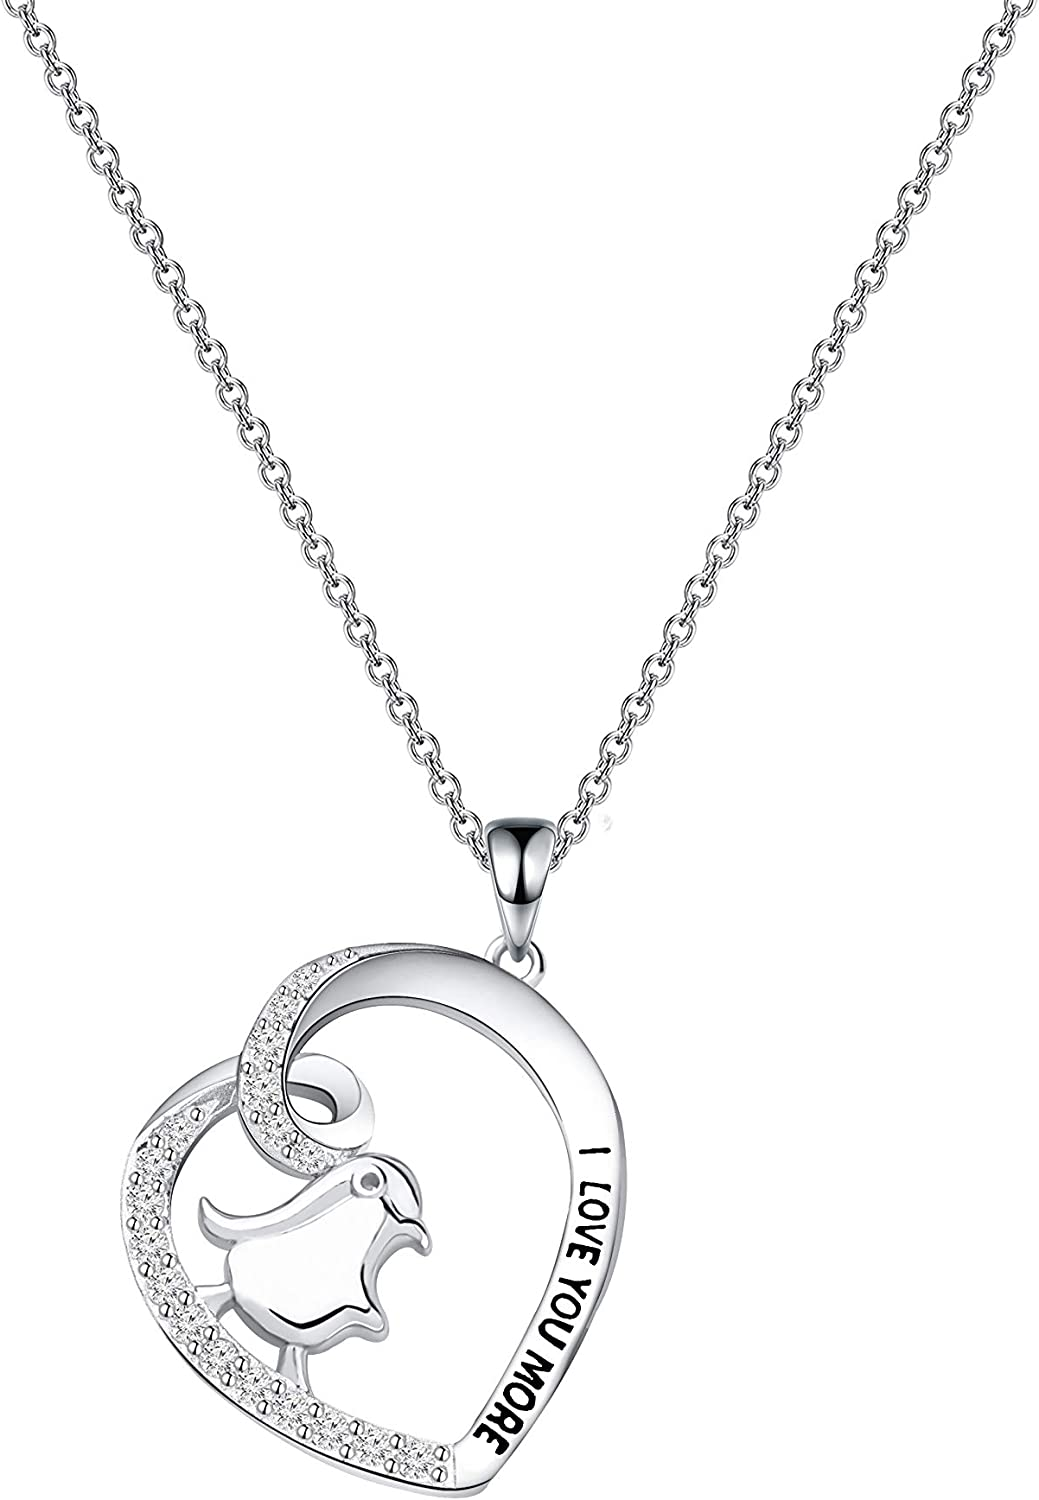 Silver Plated Penguin Necklace Gift \u2013 Cute Penguin Pendant \u2013 Charm Jewelry for Women Girls and Kids \u2013 with Message Card